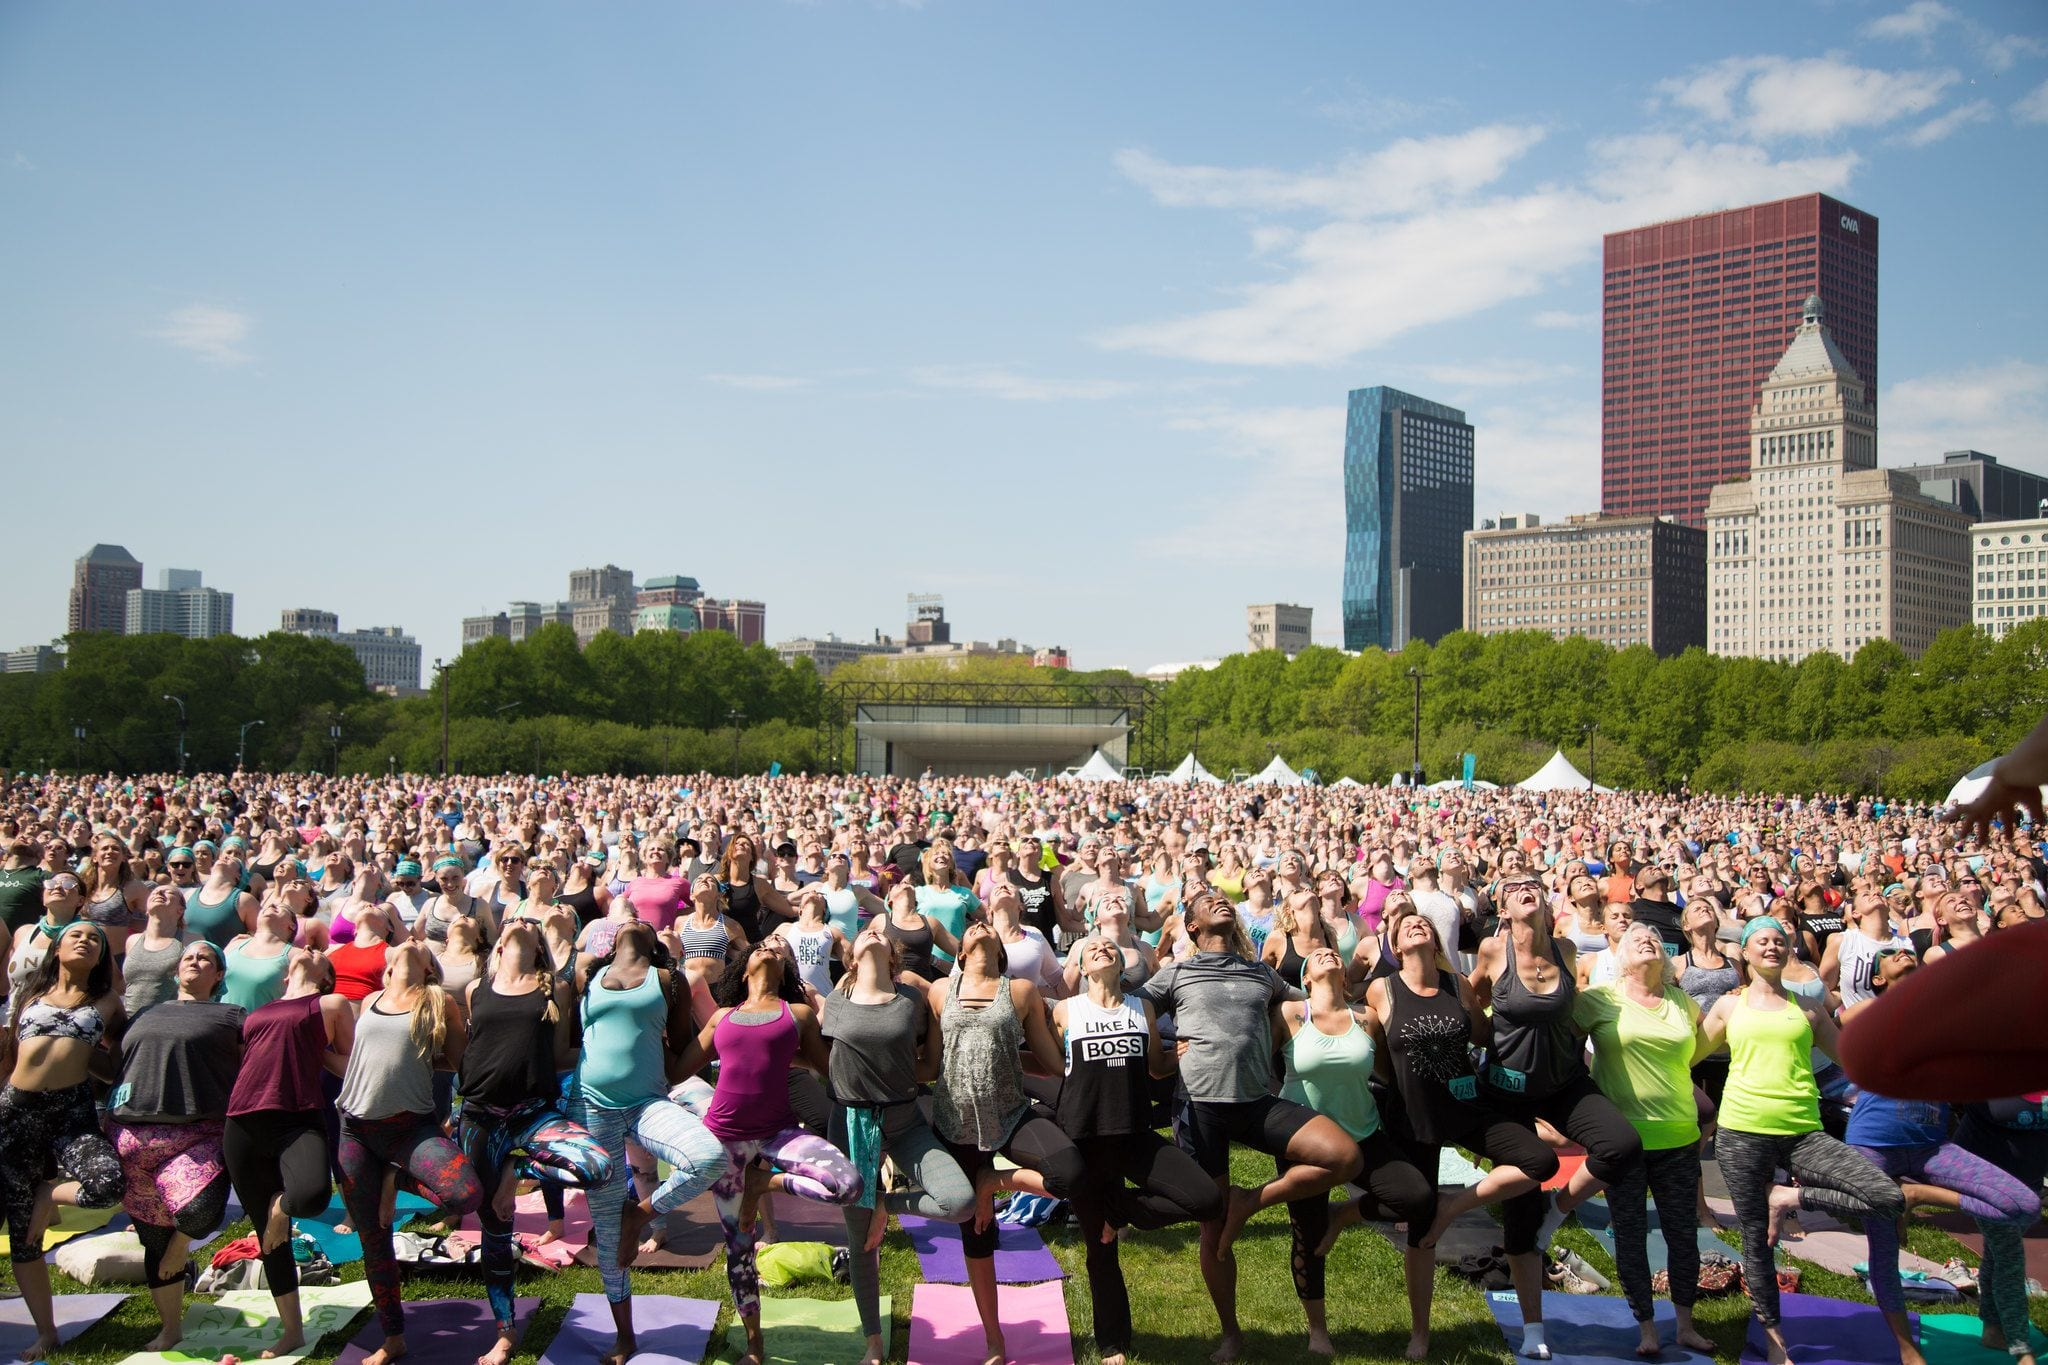 Windy City Magic: Introducing the 2-Day Chicago Festival